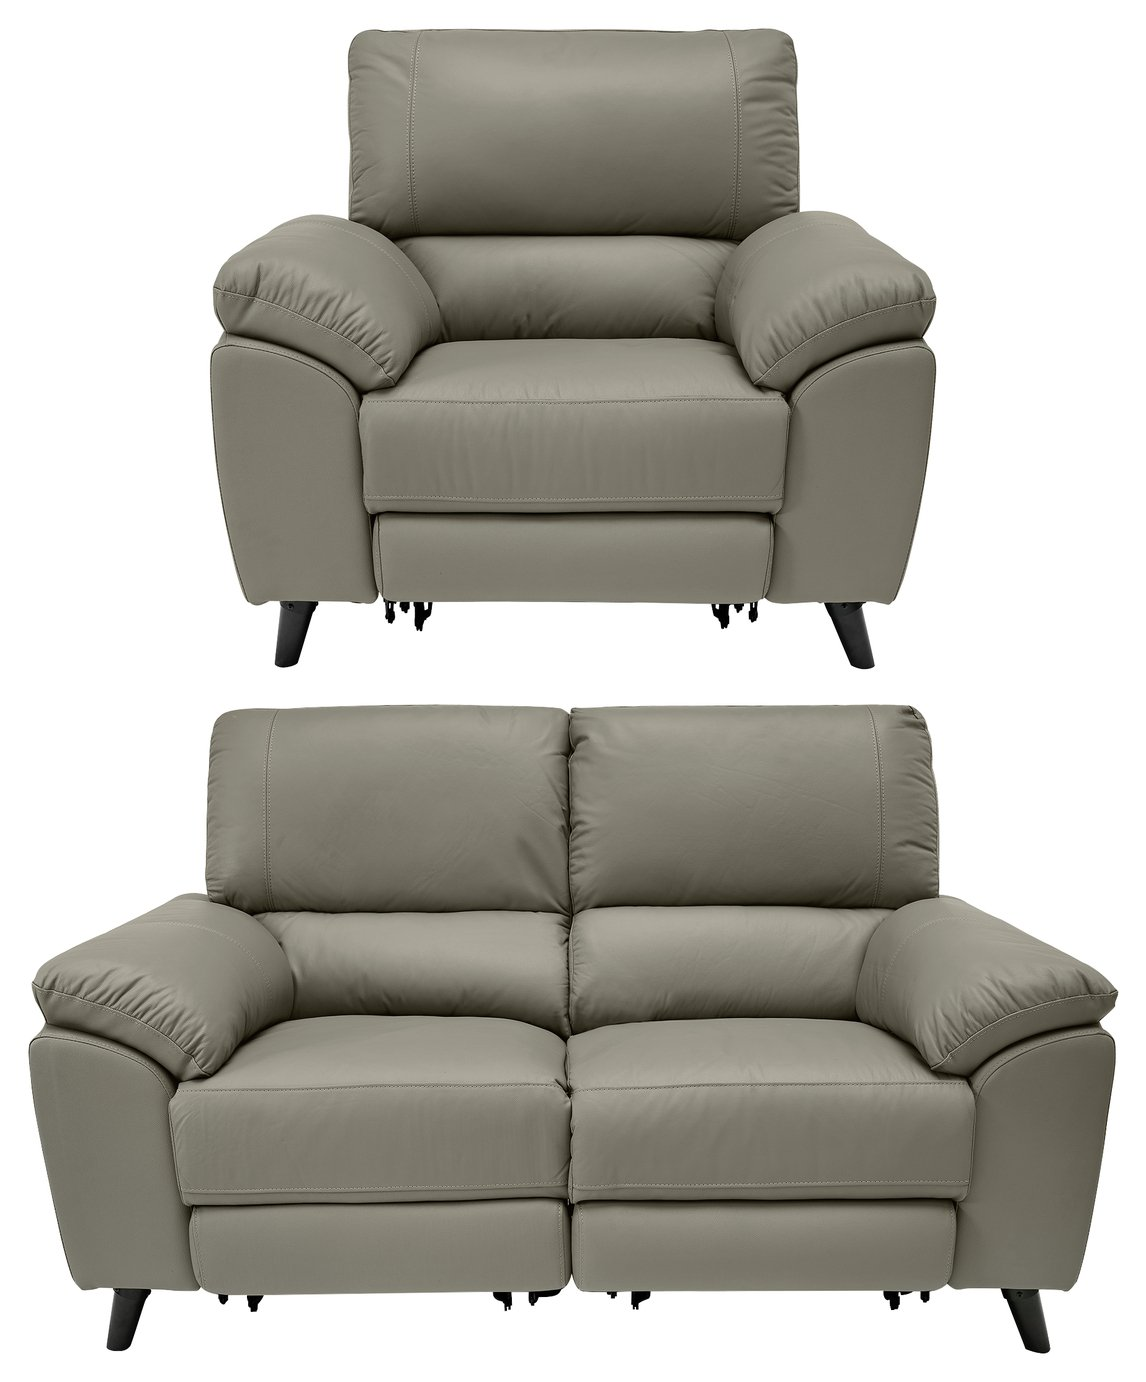 Argos Home Elliot Chair and 2 Seater Recliner Sofa review